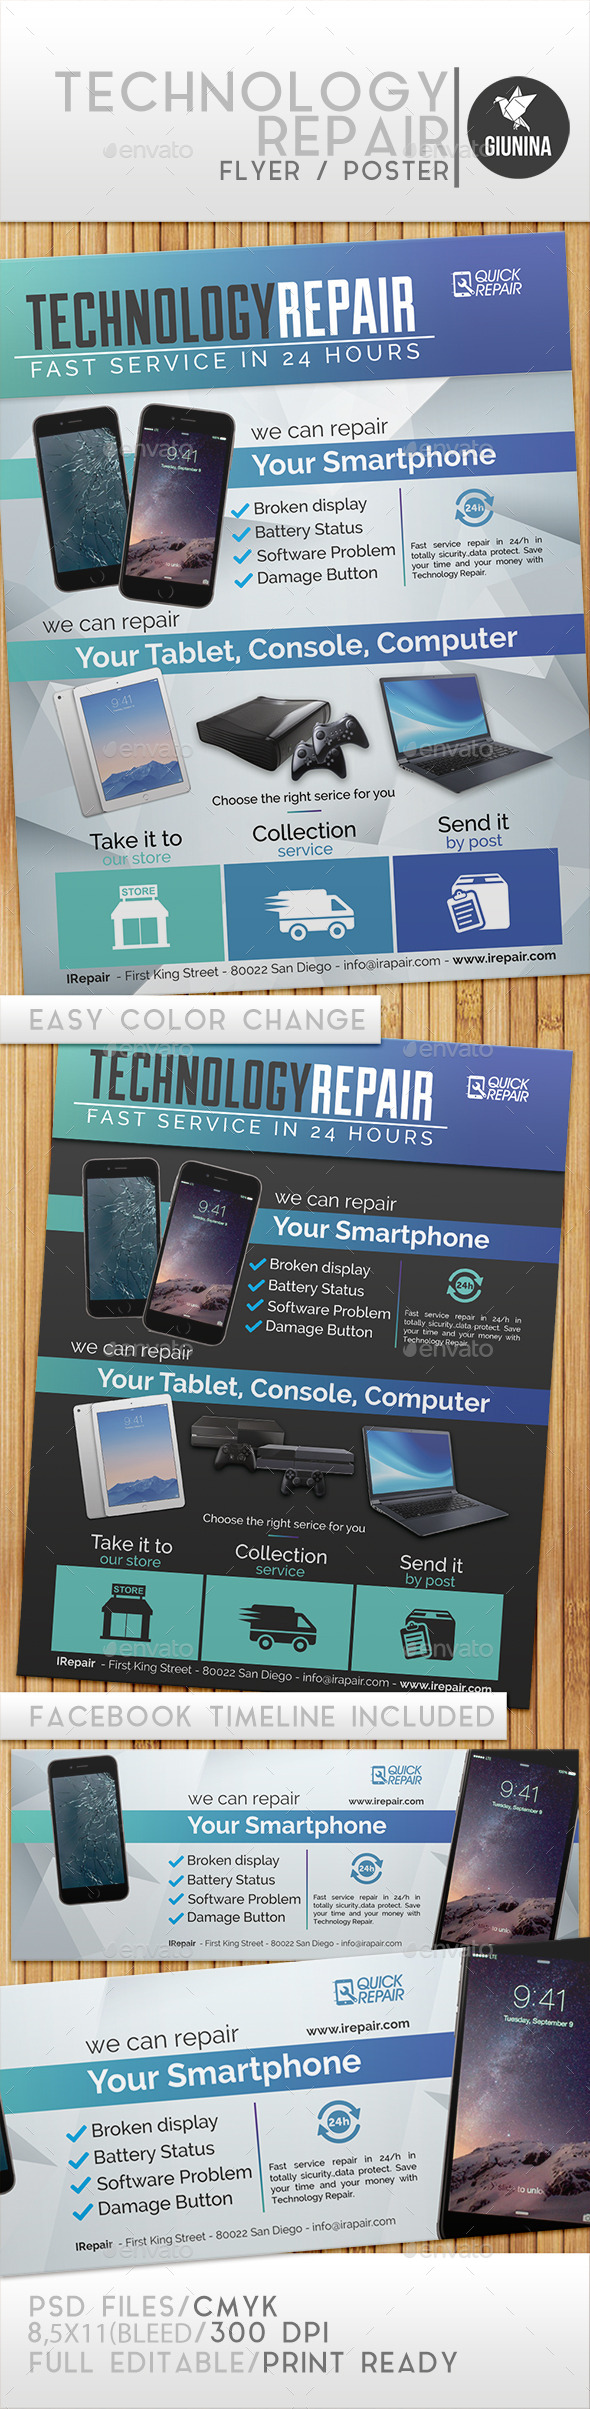 Technology Repair Flyer/Poster - Commerce Flyers